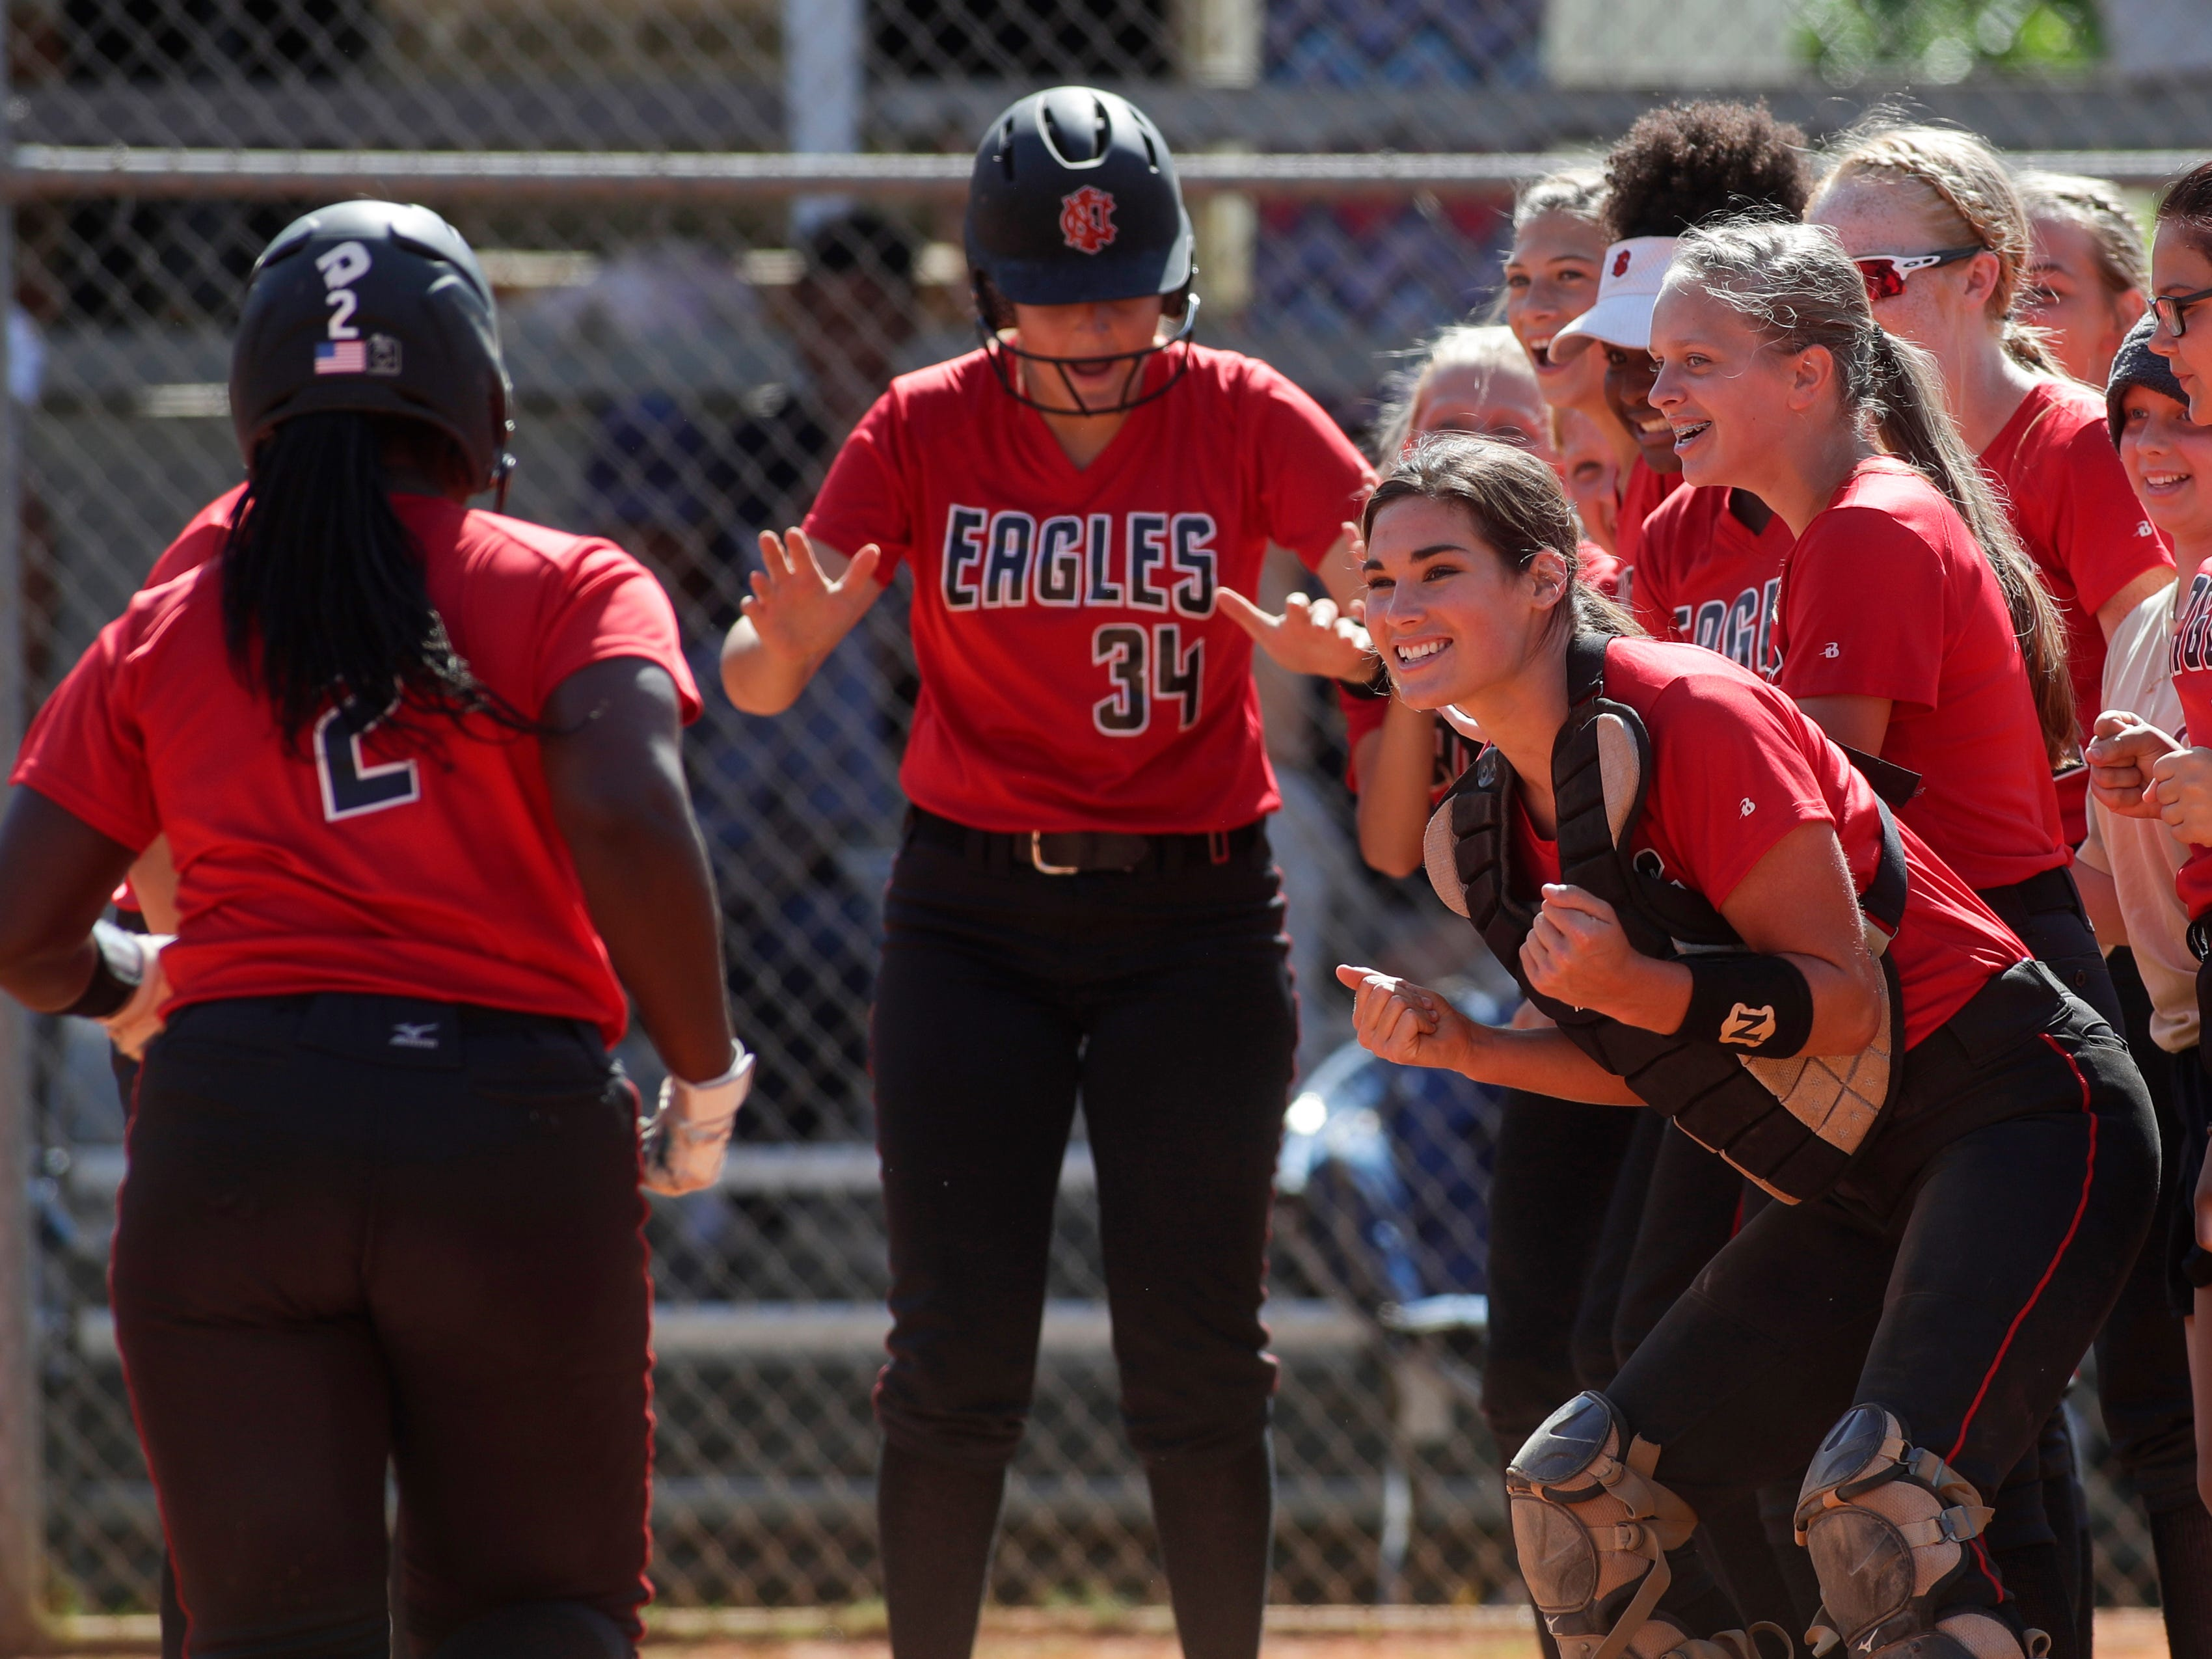 Chloe Culp (catching gear) and NFC's softball team congratulate Eva Holmes (2) on hitting a home run during the 1-3A regional final game between NFC and University Christian at NFC Tuesday, May 14, 2019. UC defeated NFC 16-11.